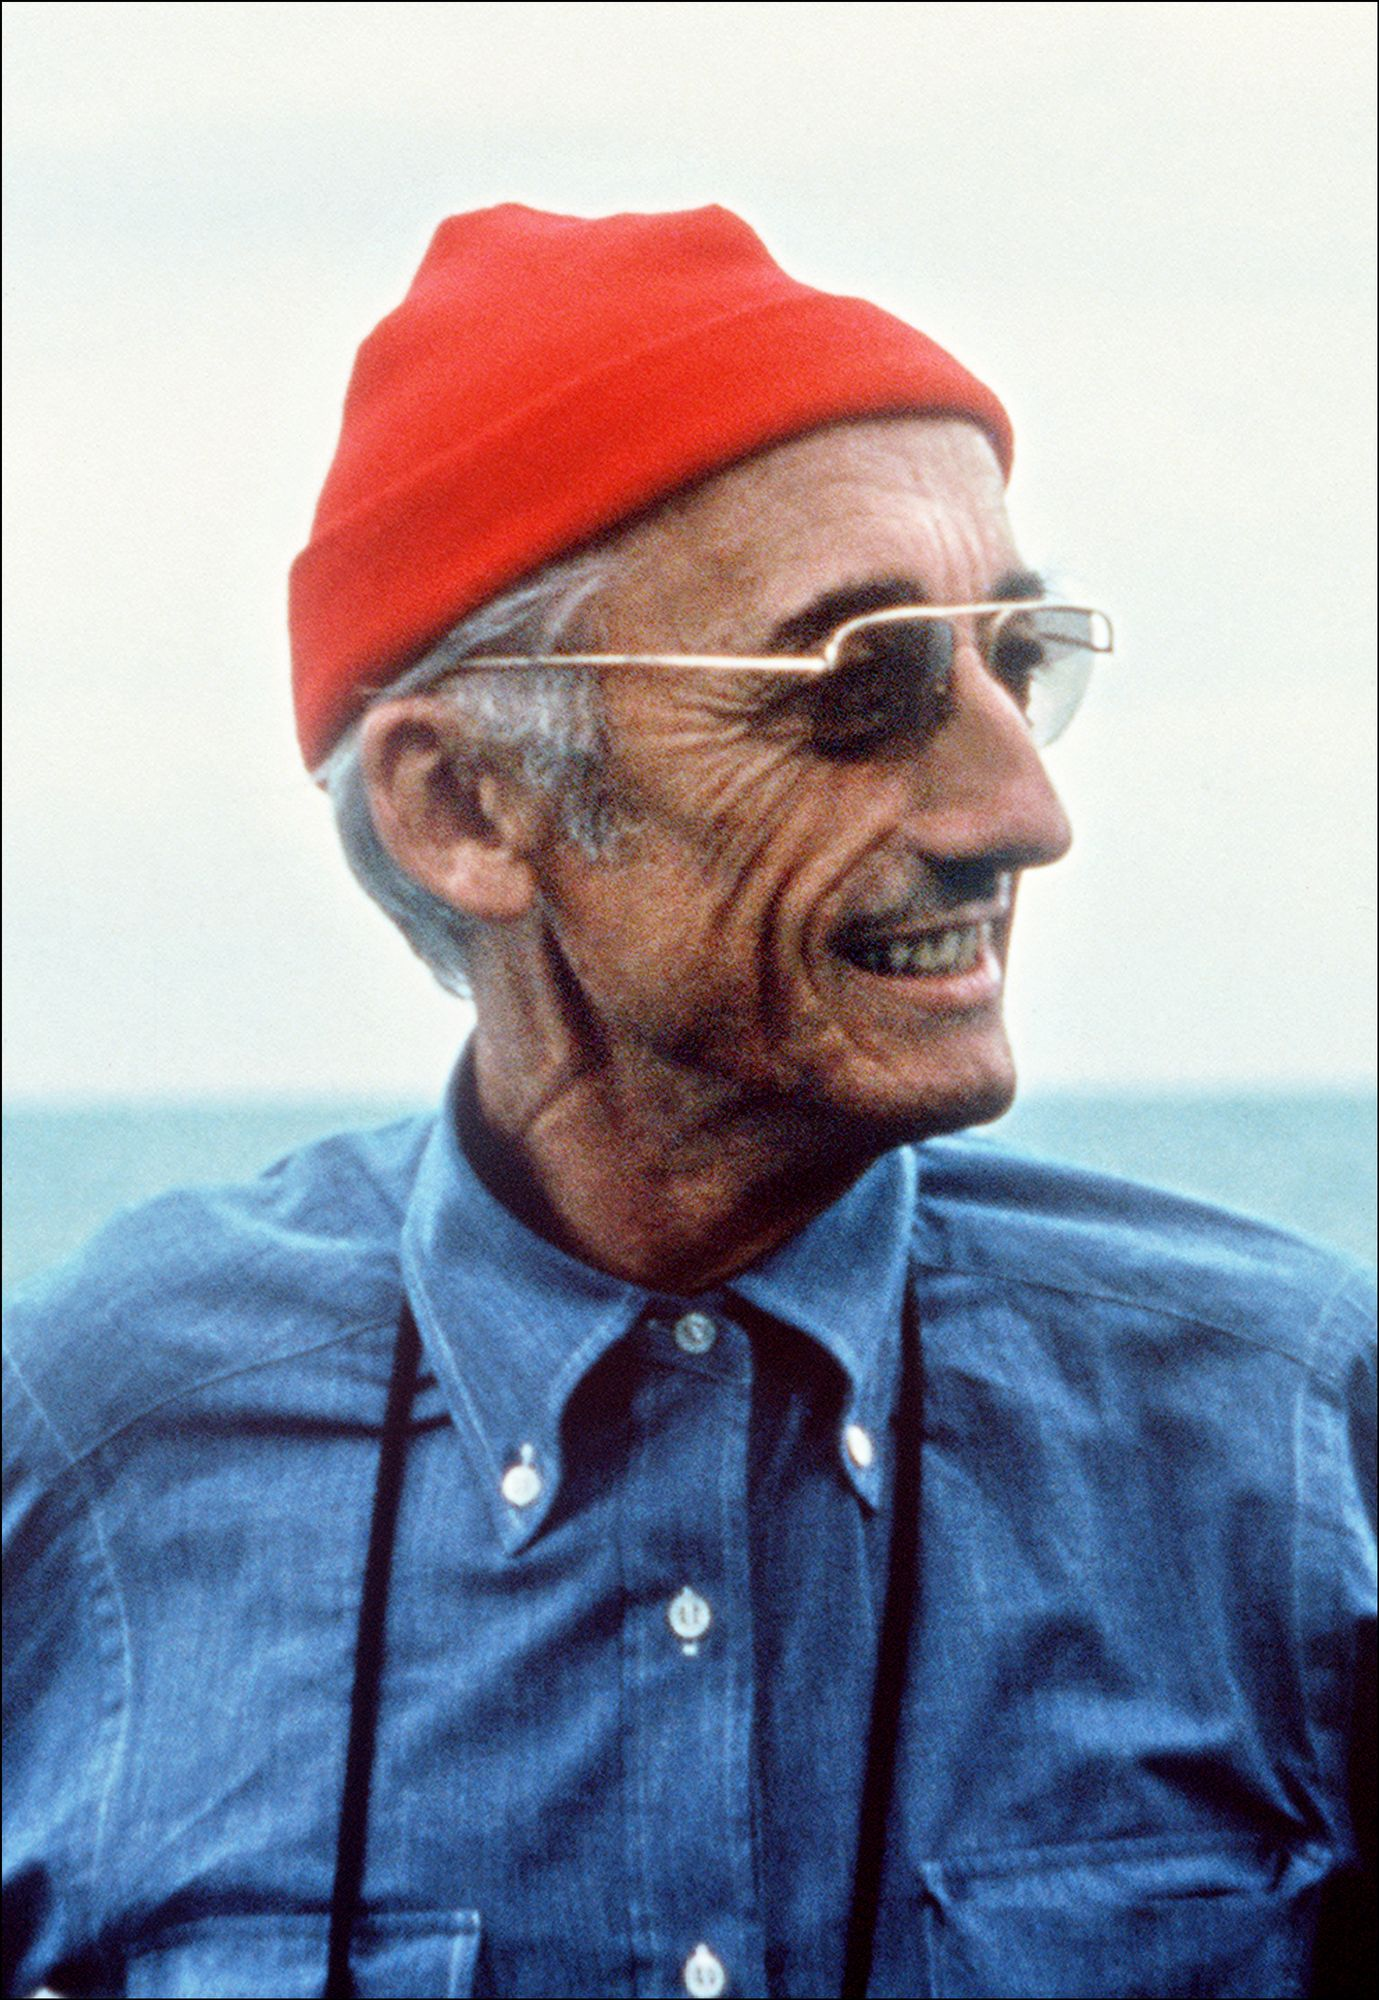 essay on jacques yves cousteau Essay jacques-yves cousteau was born in st andre de cubazac, france in 1910 the son of a lawyer, jacques was warned by doctors to avoid strenuous activities due to.